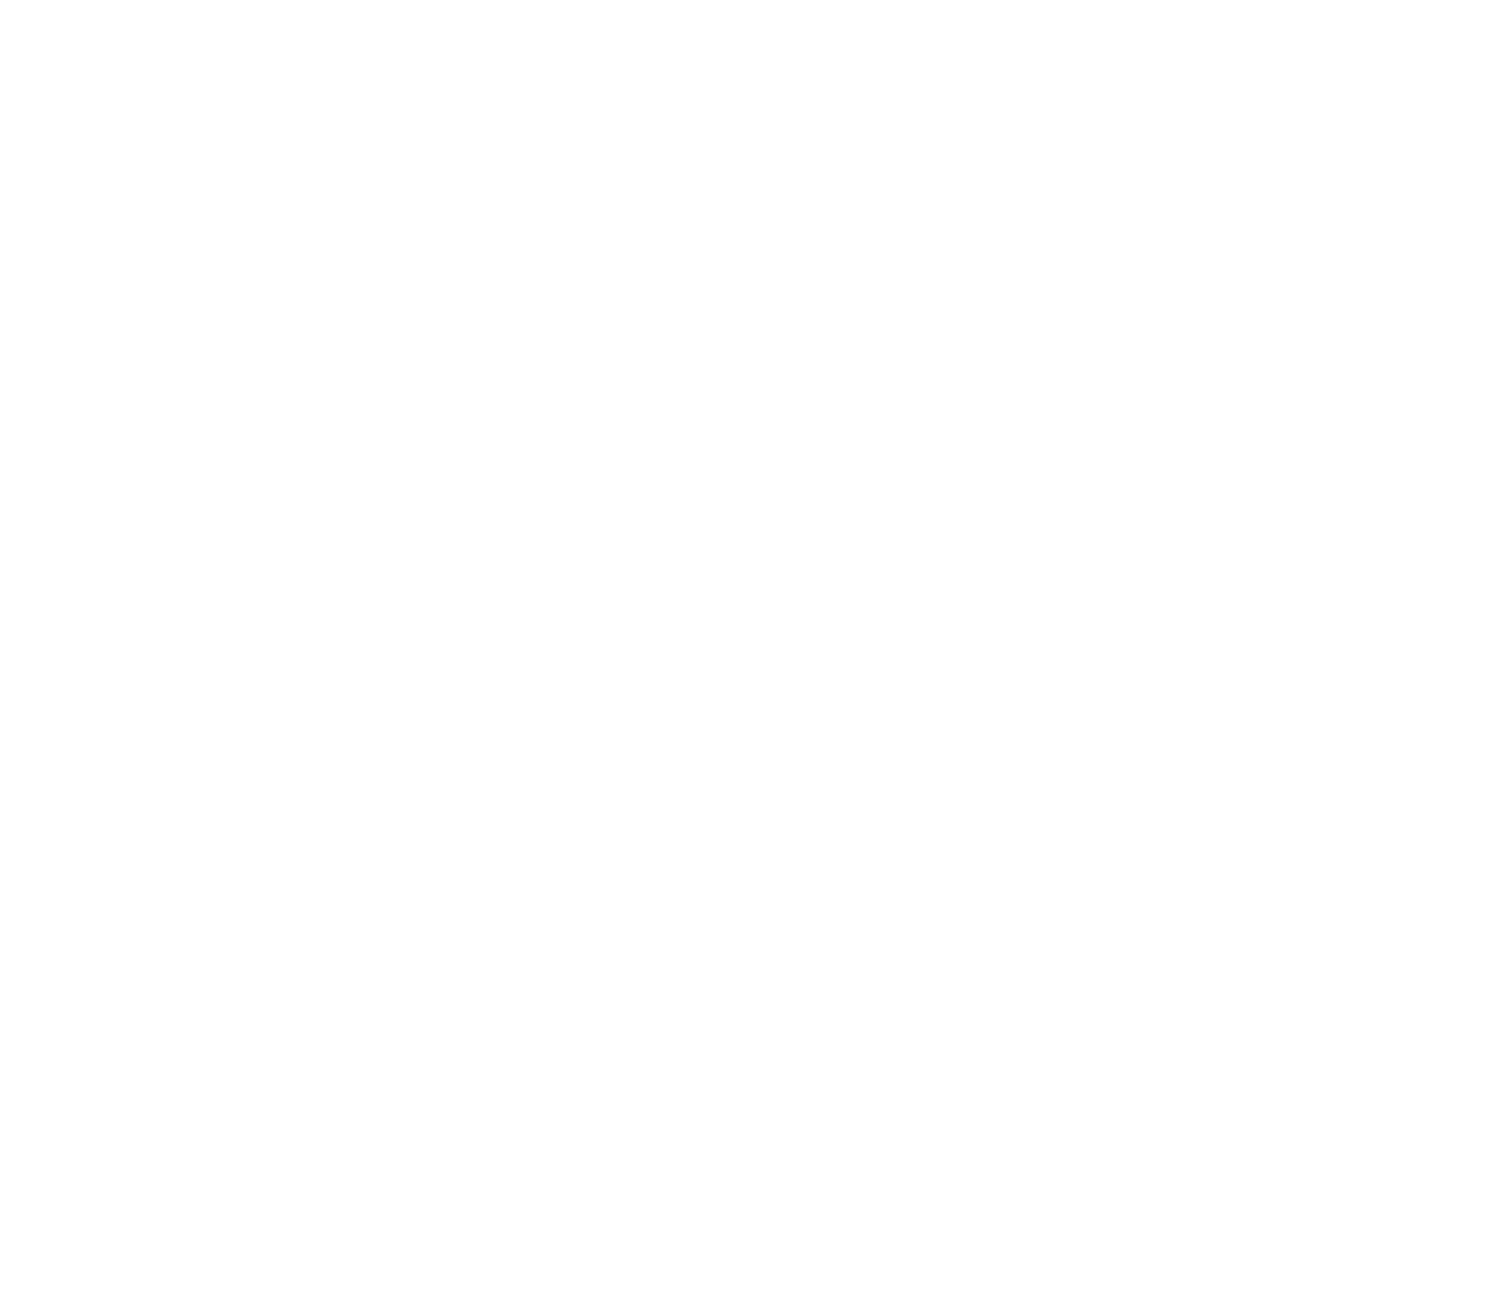 Peaceful Valley Camp